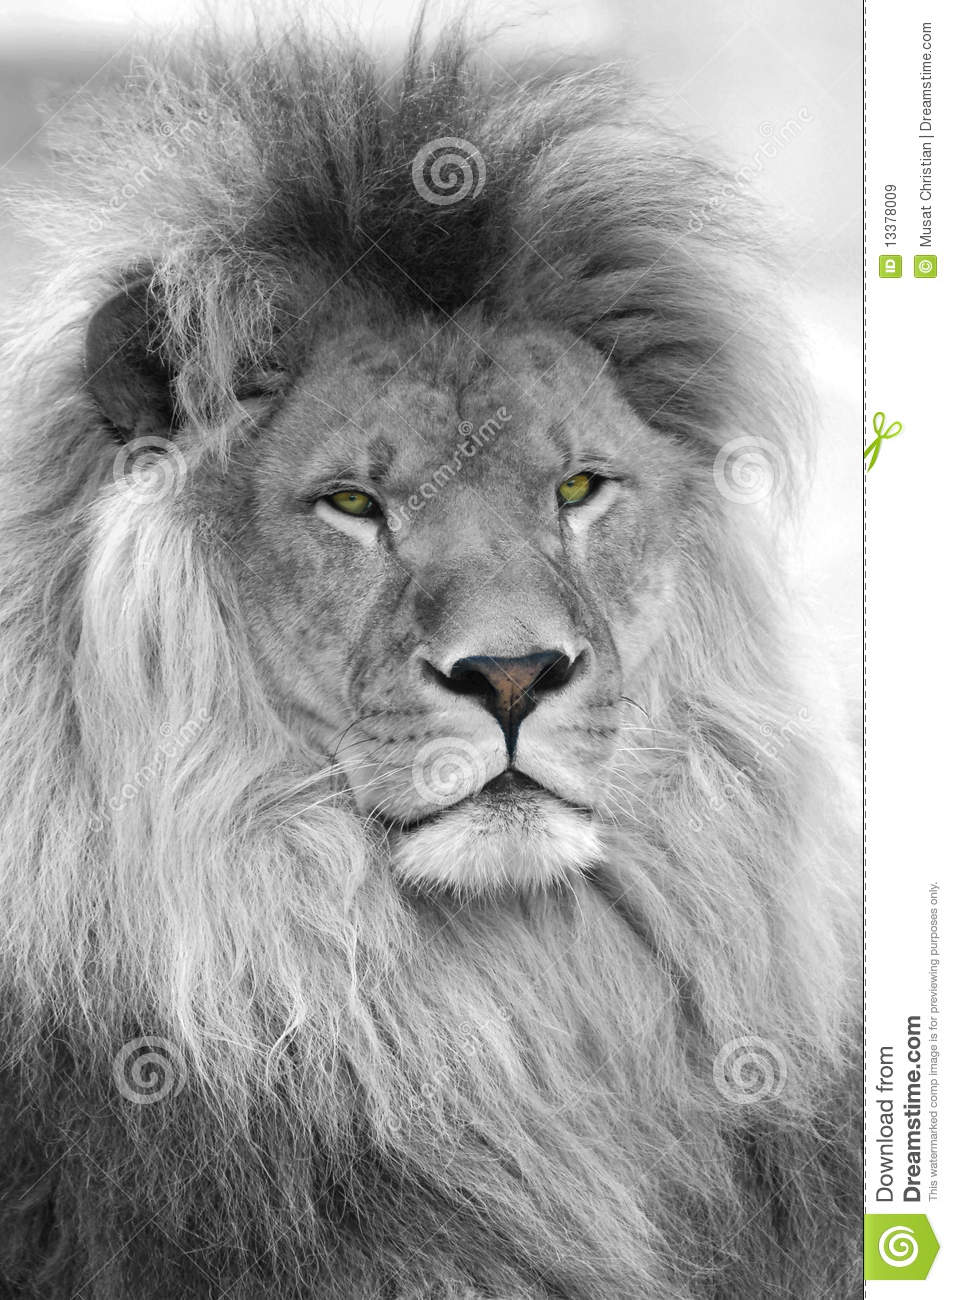 Black and white portrait of lion